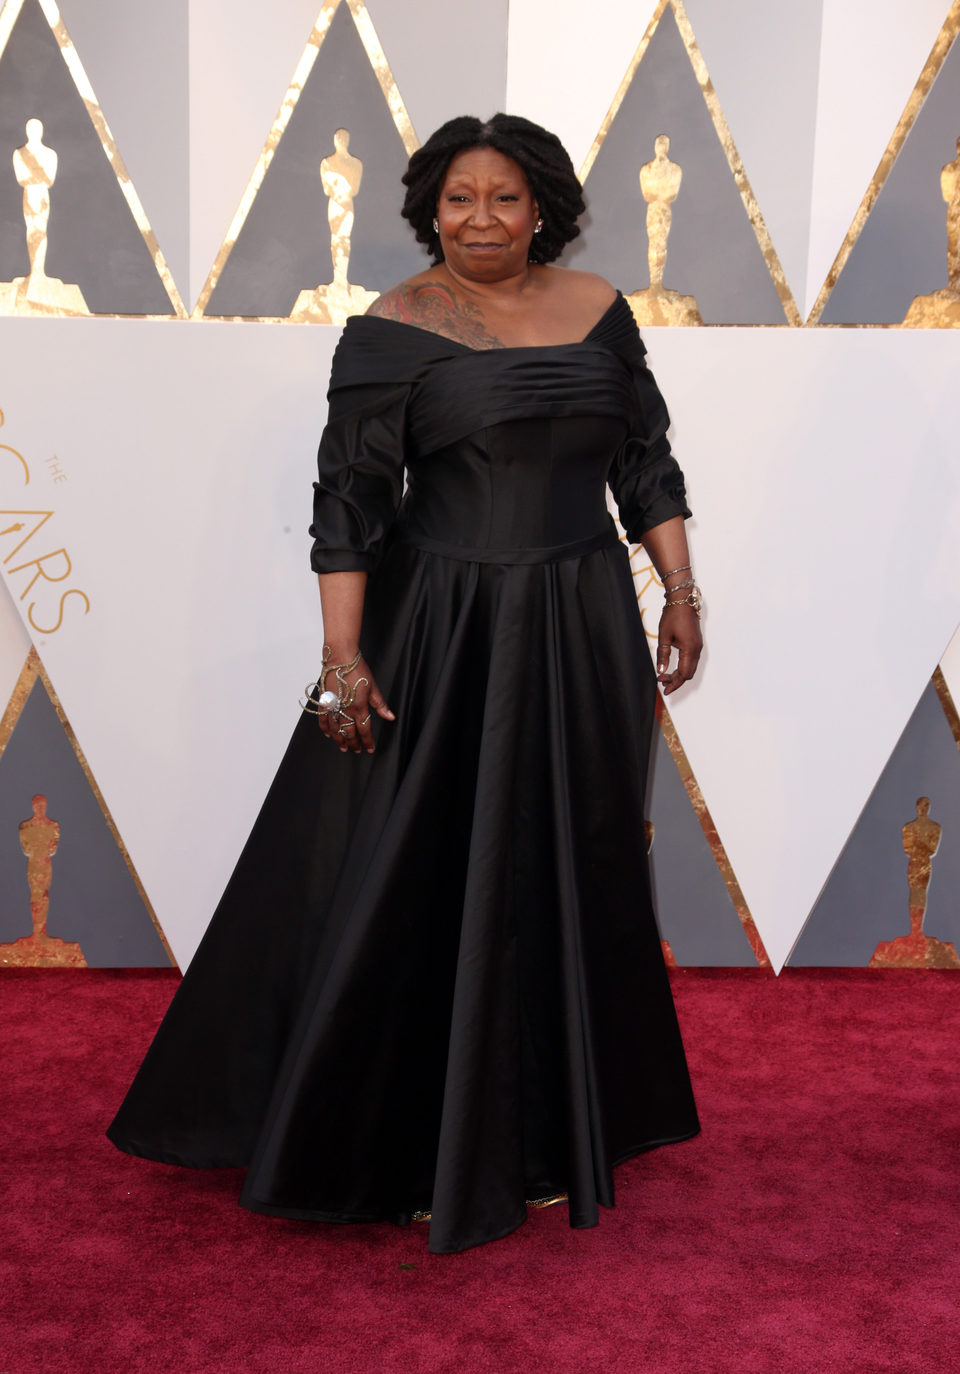 Whoopi Goldberg at the Oscars 2016 red carpet